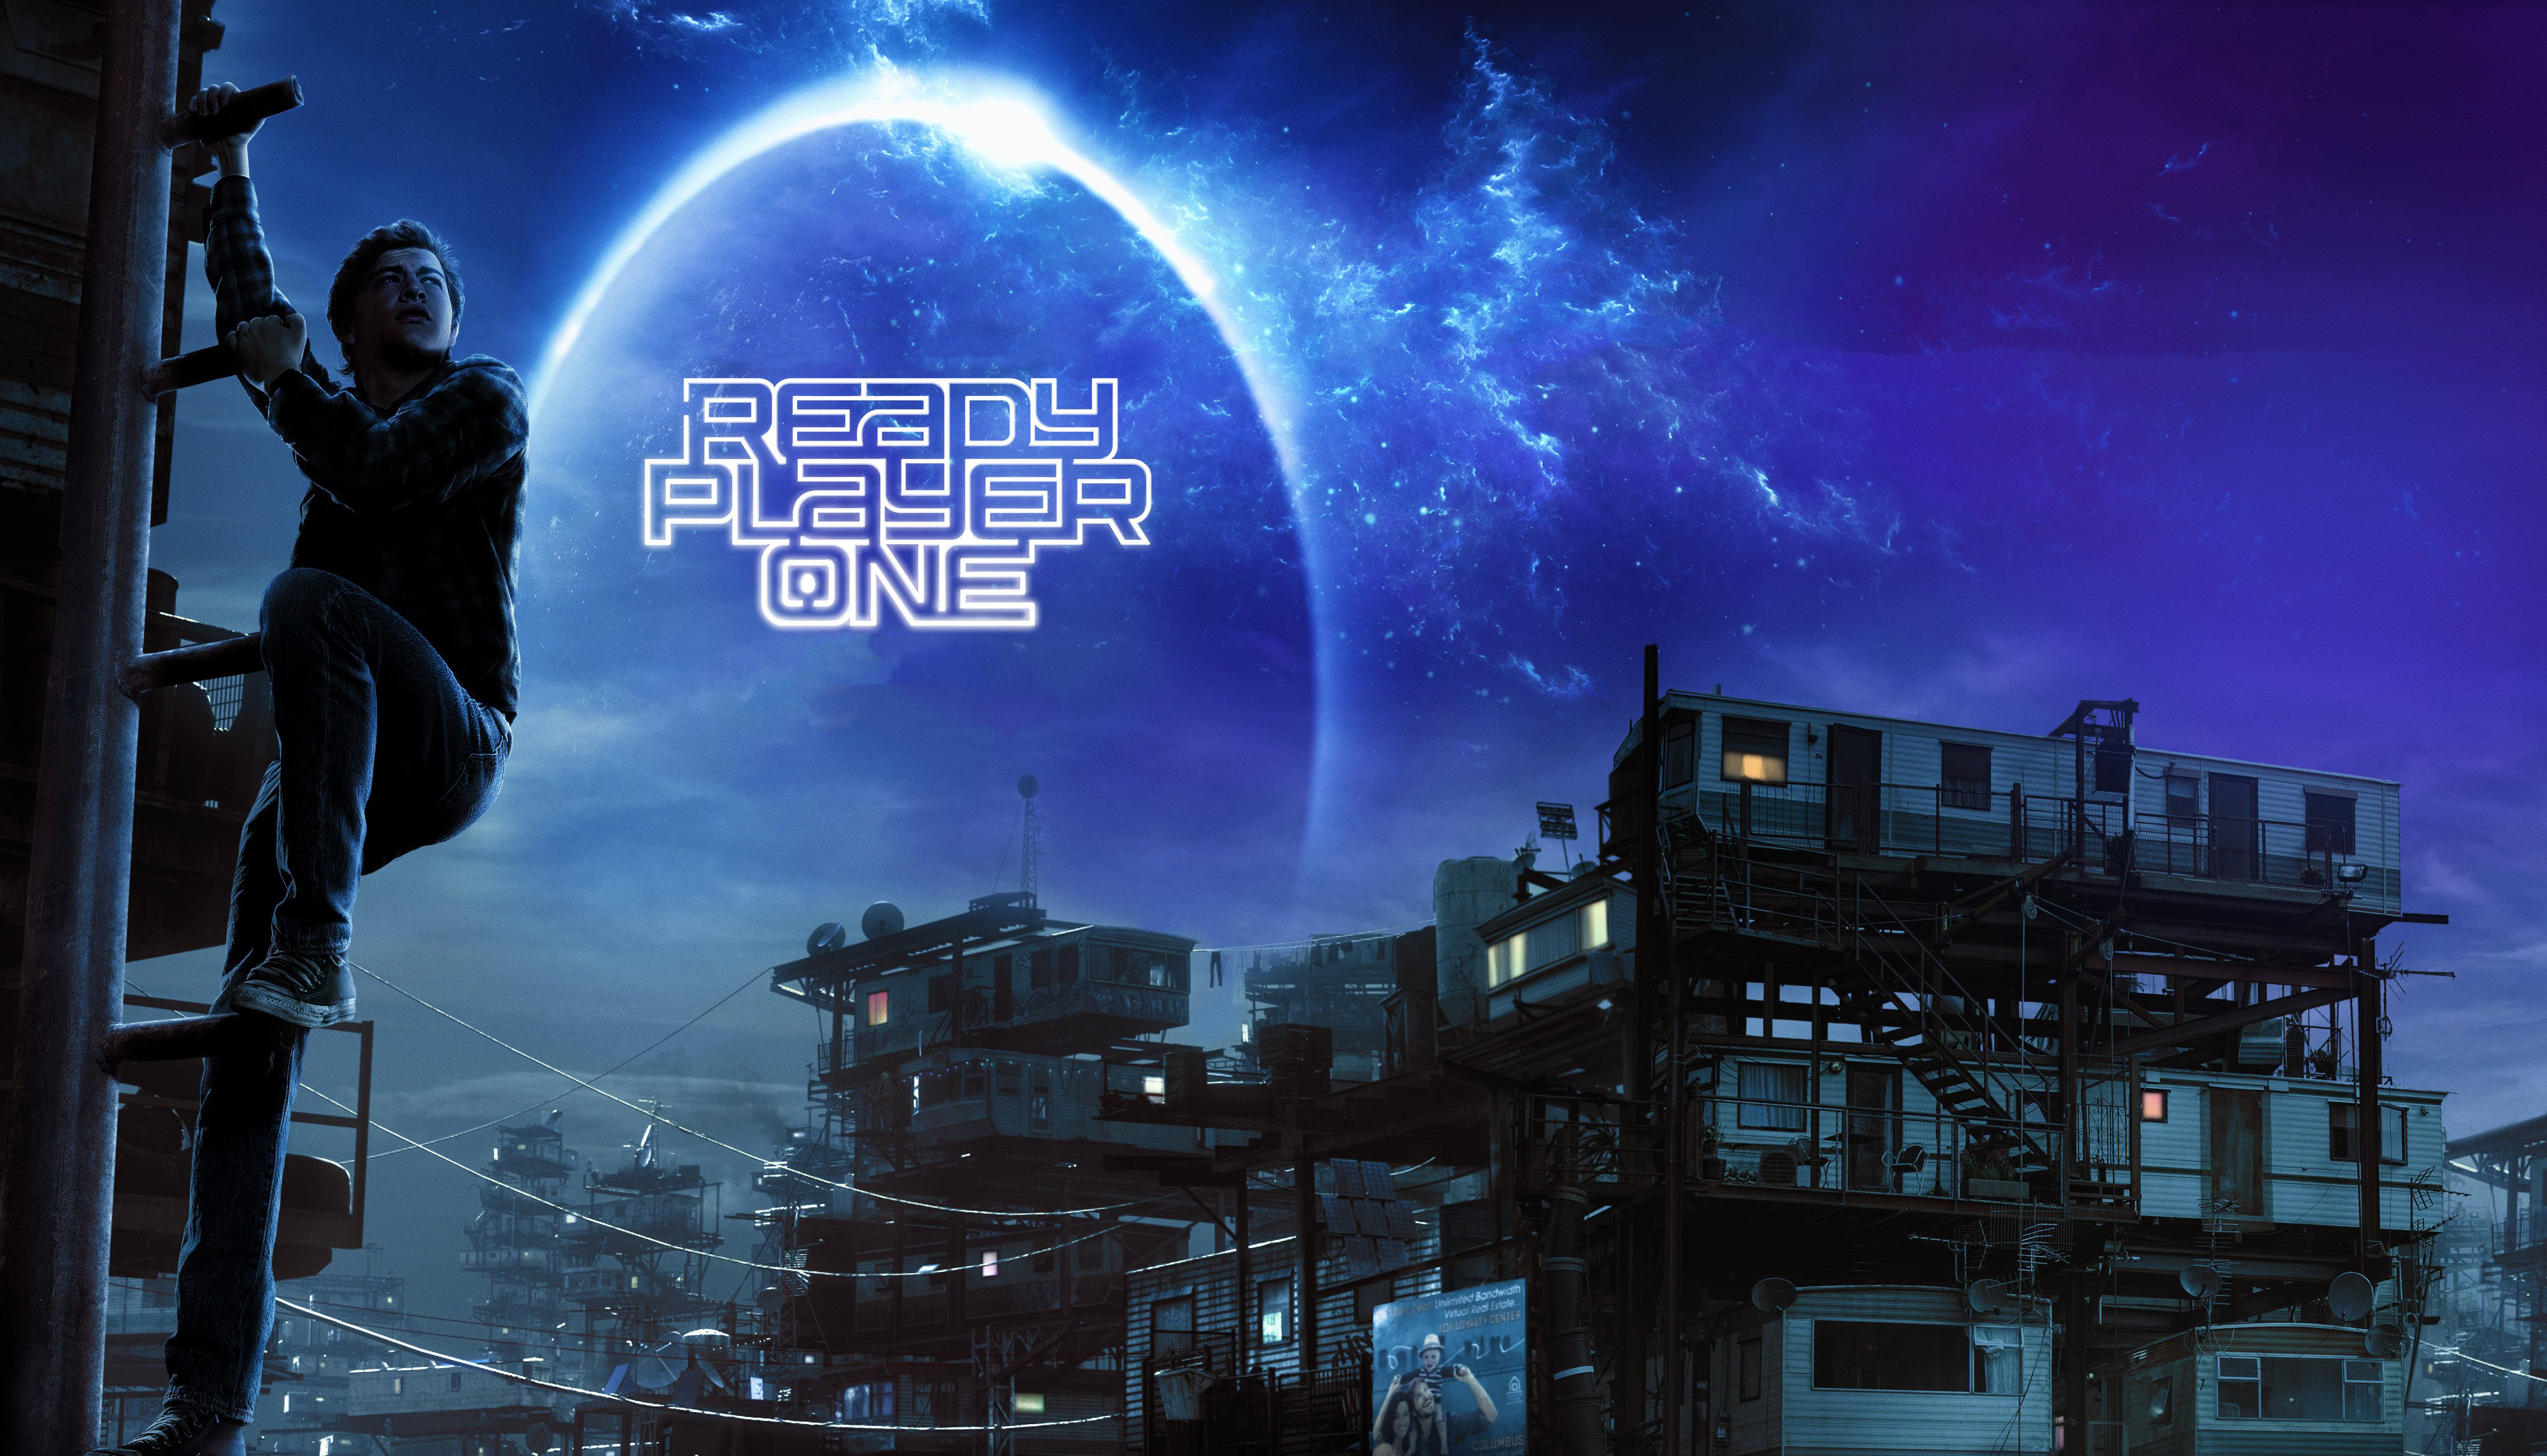 41 Ready Player One Hd Wallpapers Background Images Wallpaper